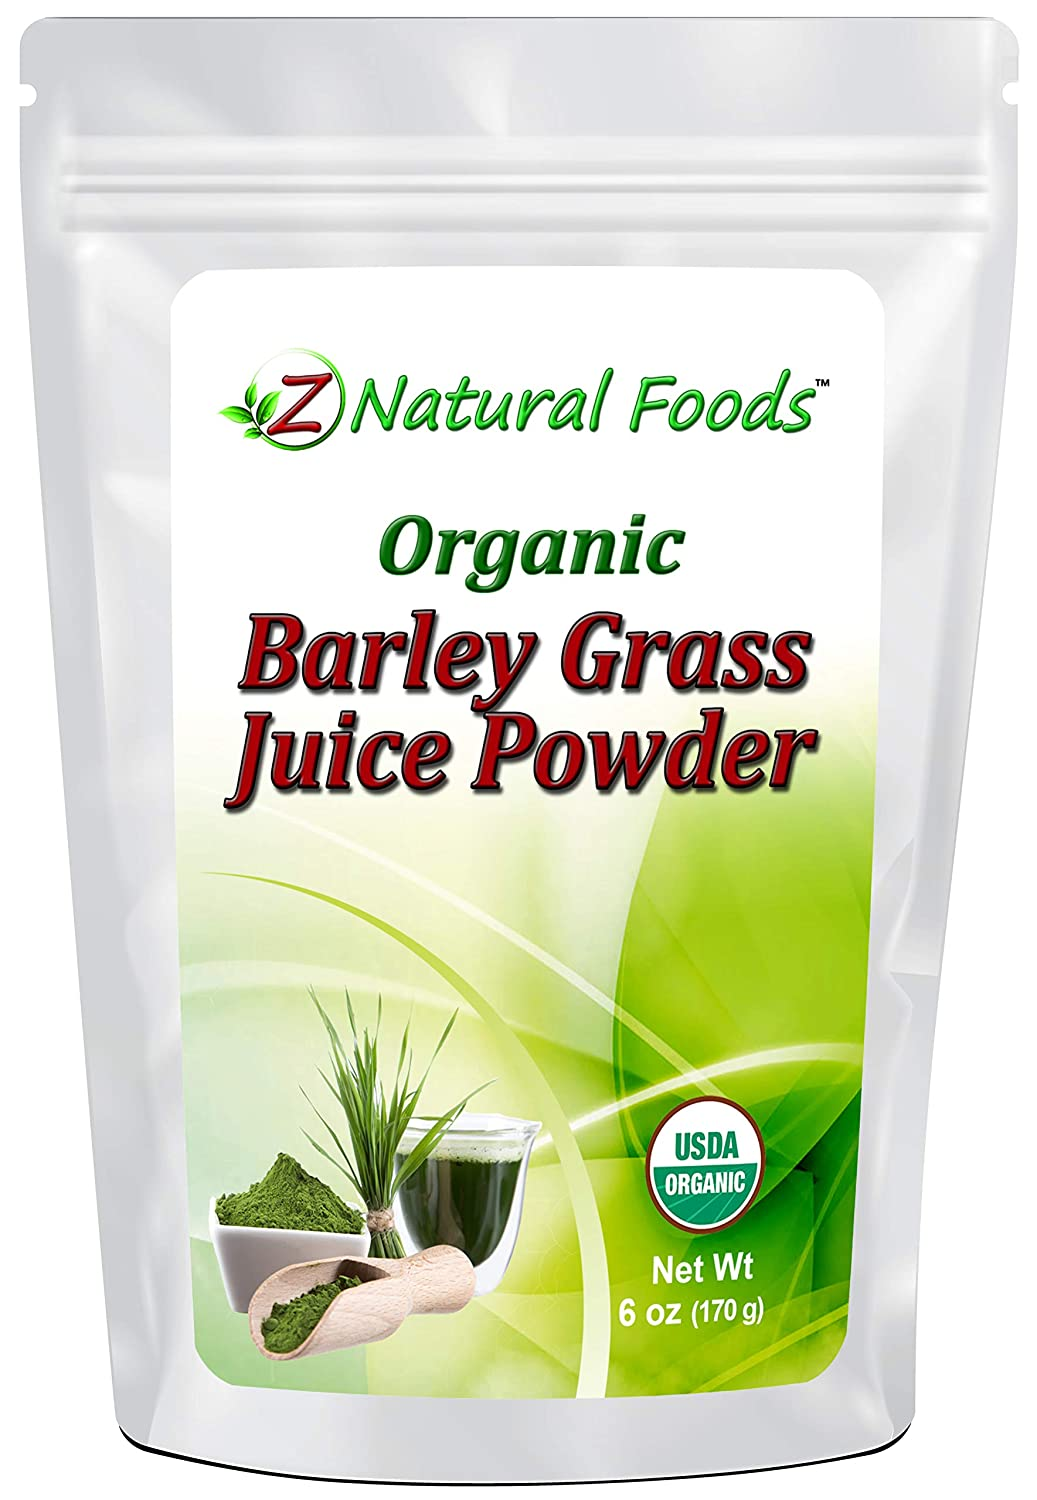 Organic Barley Grass Juice Powder - 6 oz - Amazing Green Superfood Perfect For Smoothies, Drinks, & Recipes - Rich In Vitamins, Minerals, & Antioxidants - Raw, Vegan, Non GMO, Gluten Free